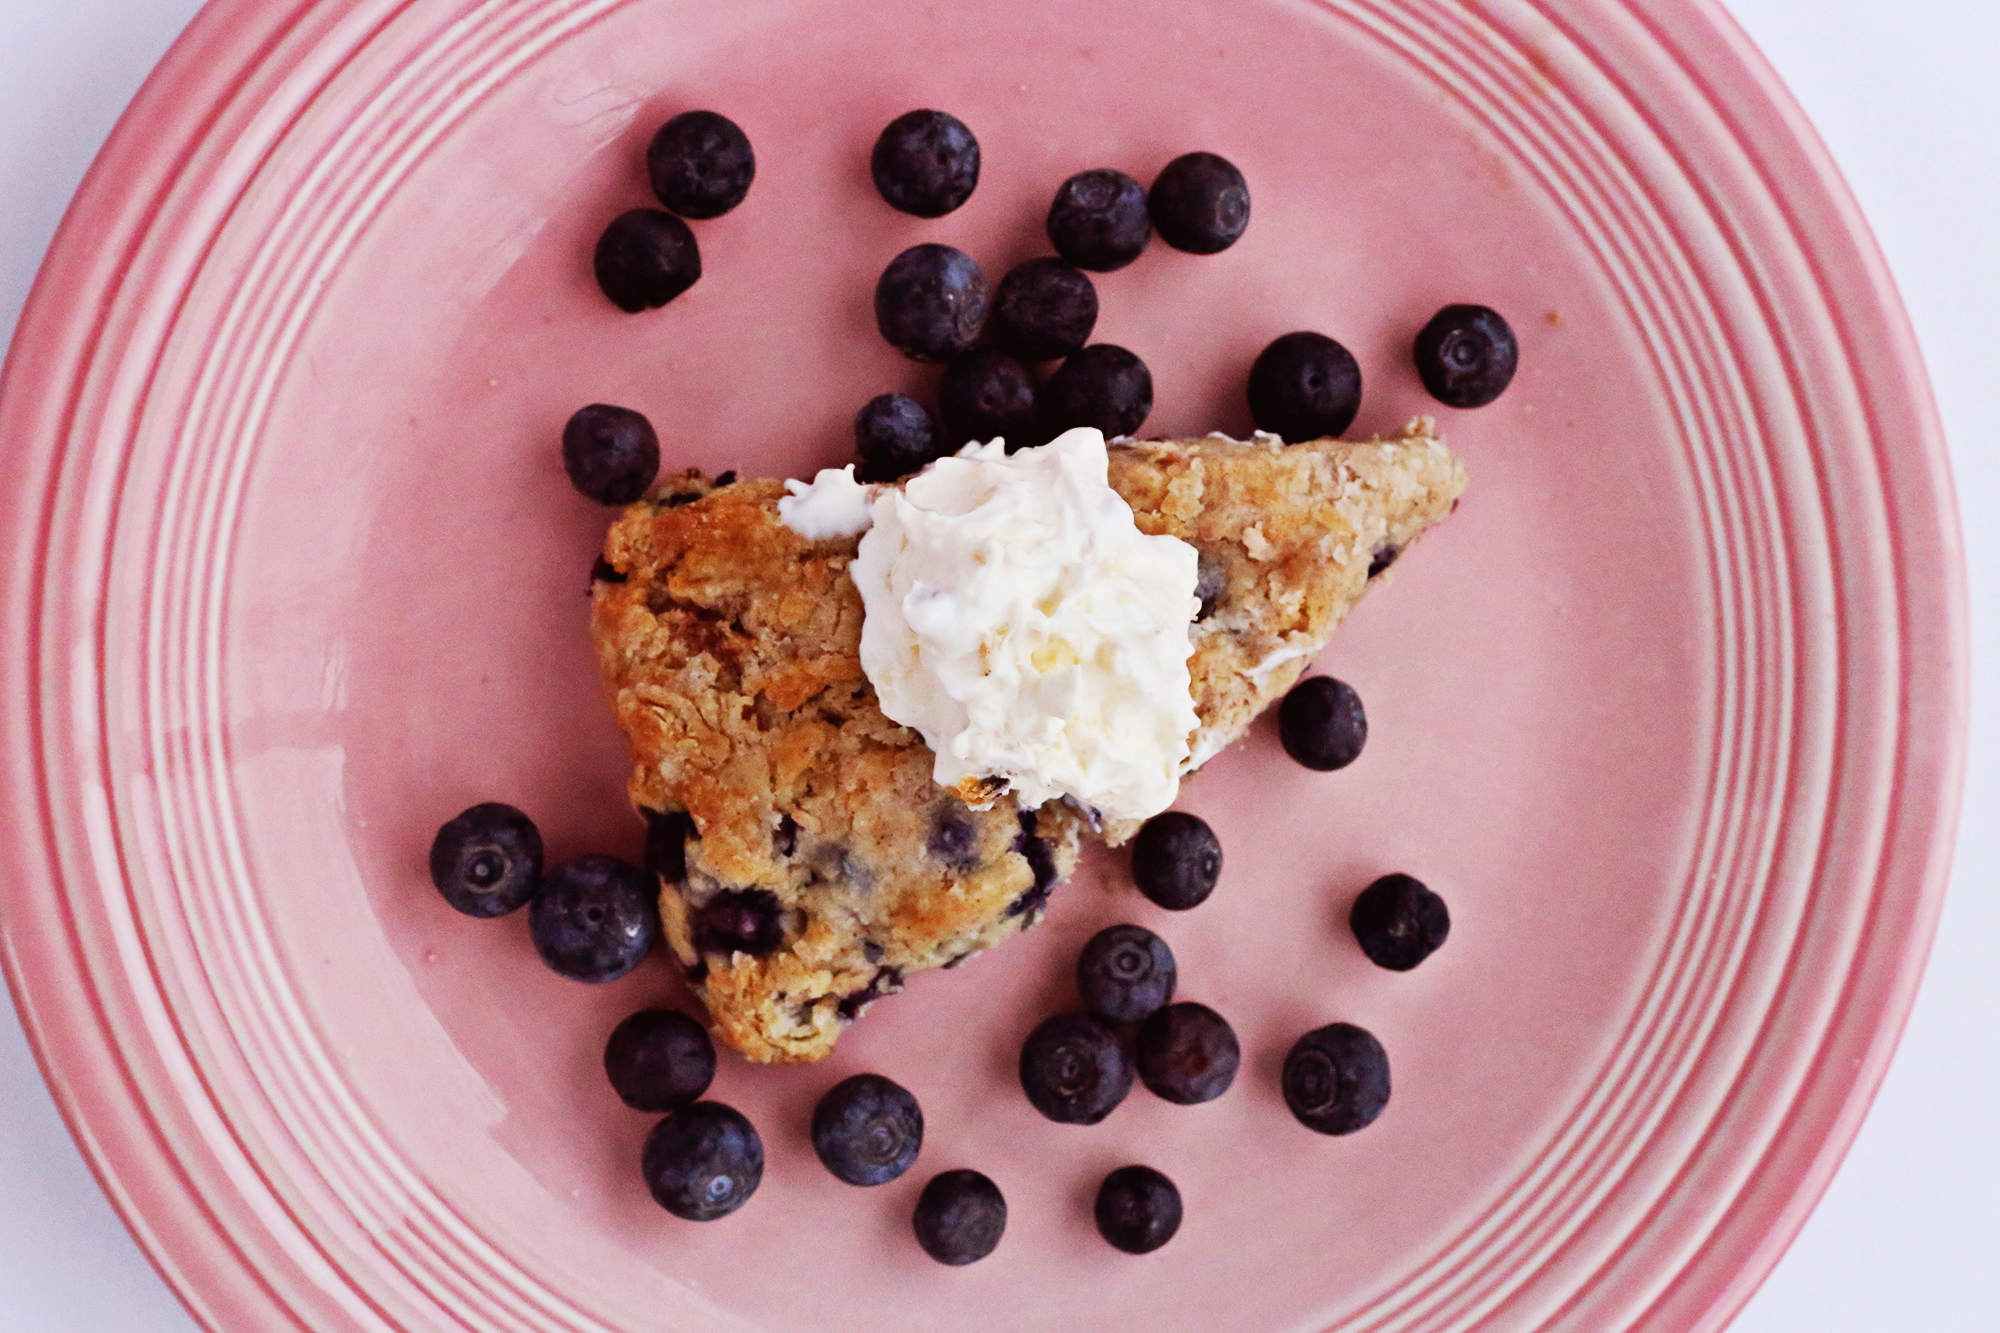 Tea time isn't the same without blueberry scones and clotted cream! Visit Lily & Val Living for the recipe!